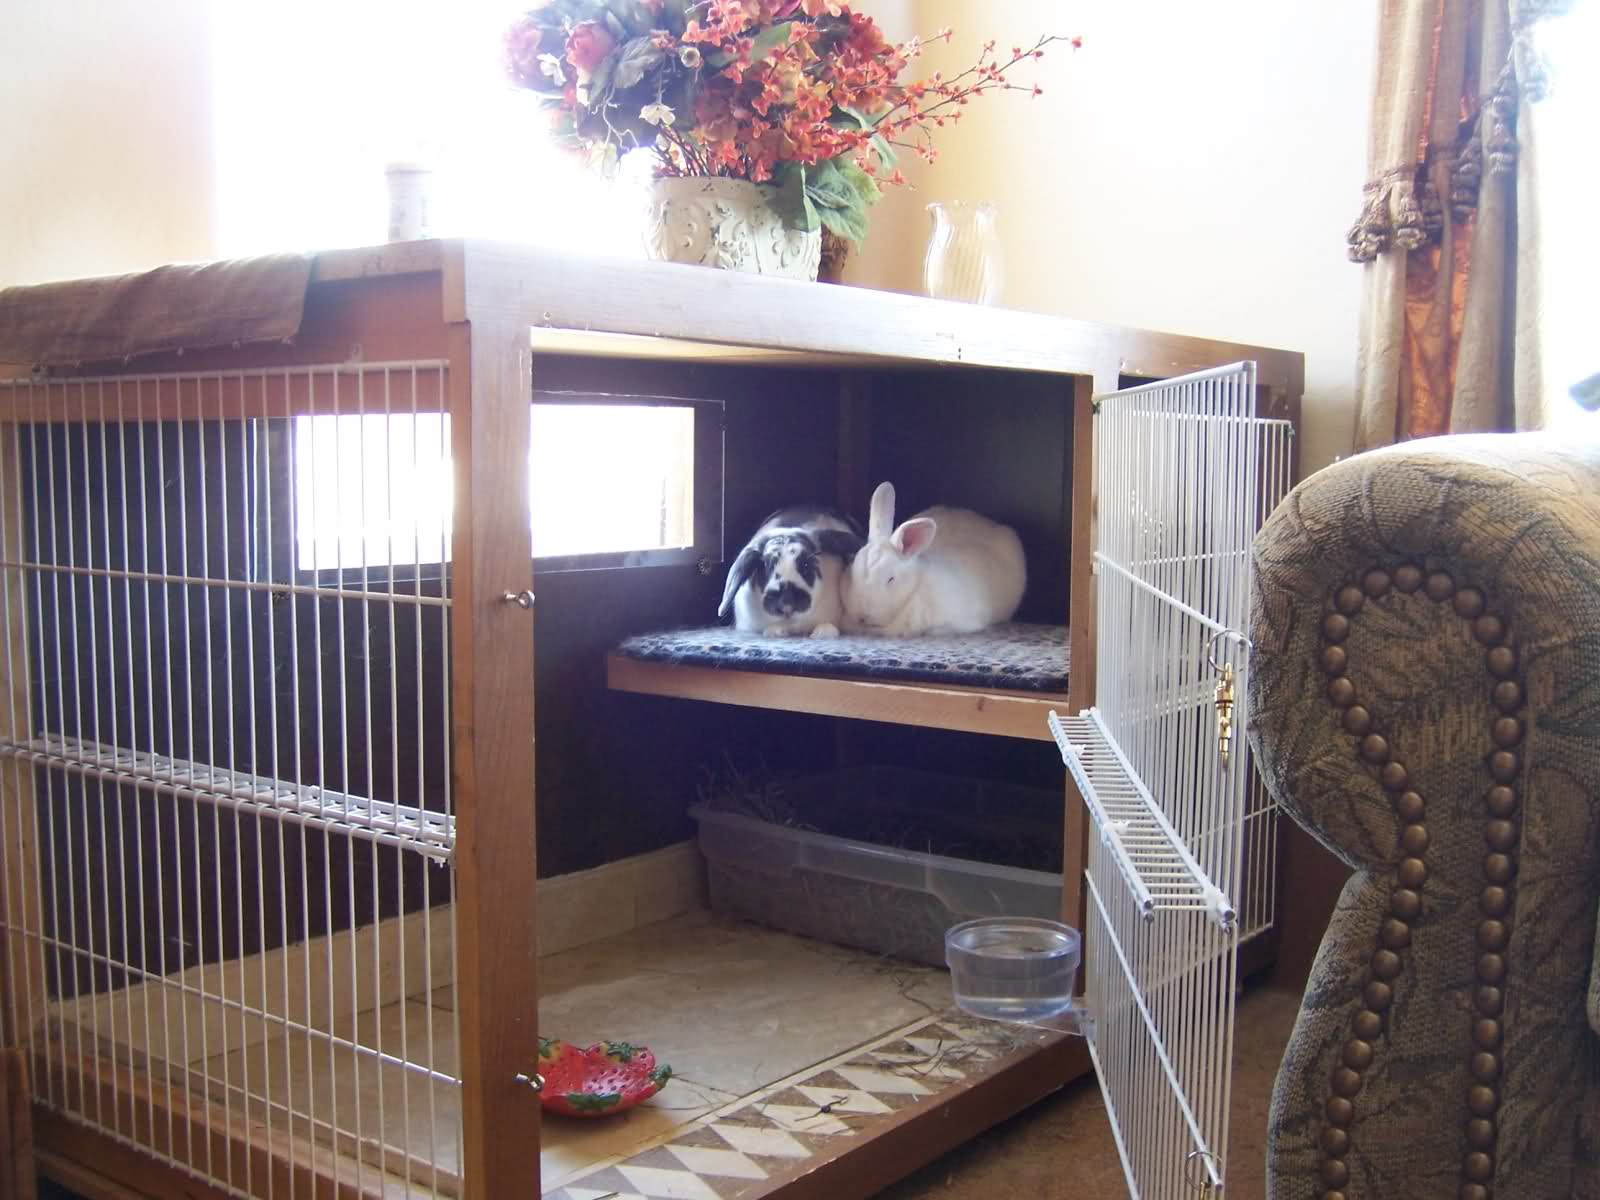 Diy Cage For Rabbit Indoor Rabbit Housing Bunny Approved House Rabbit Toys